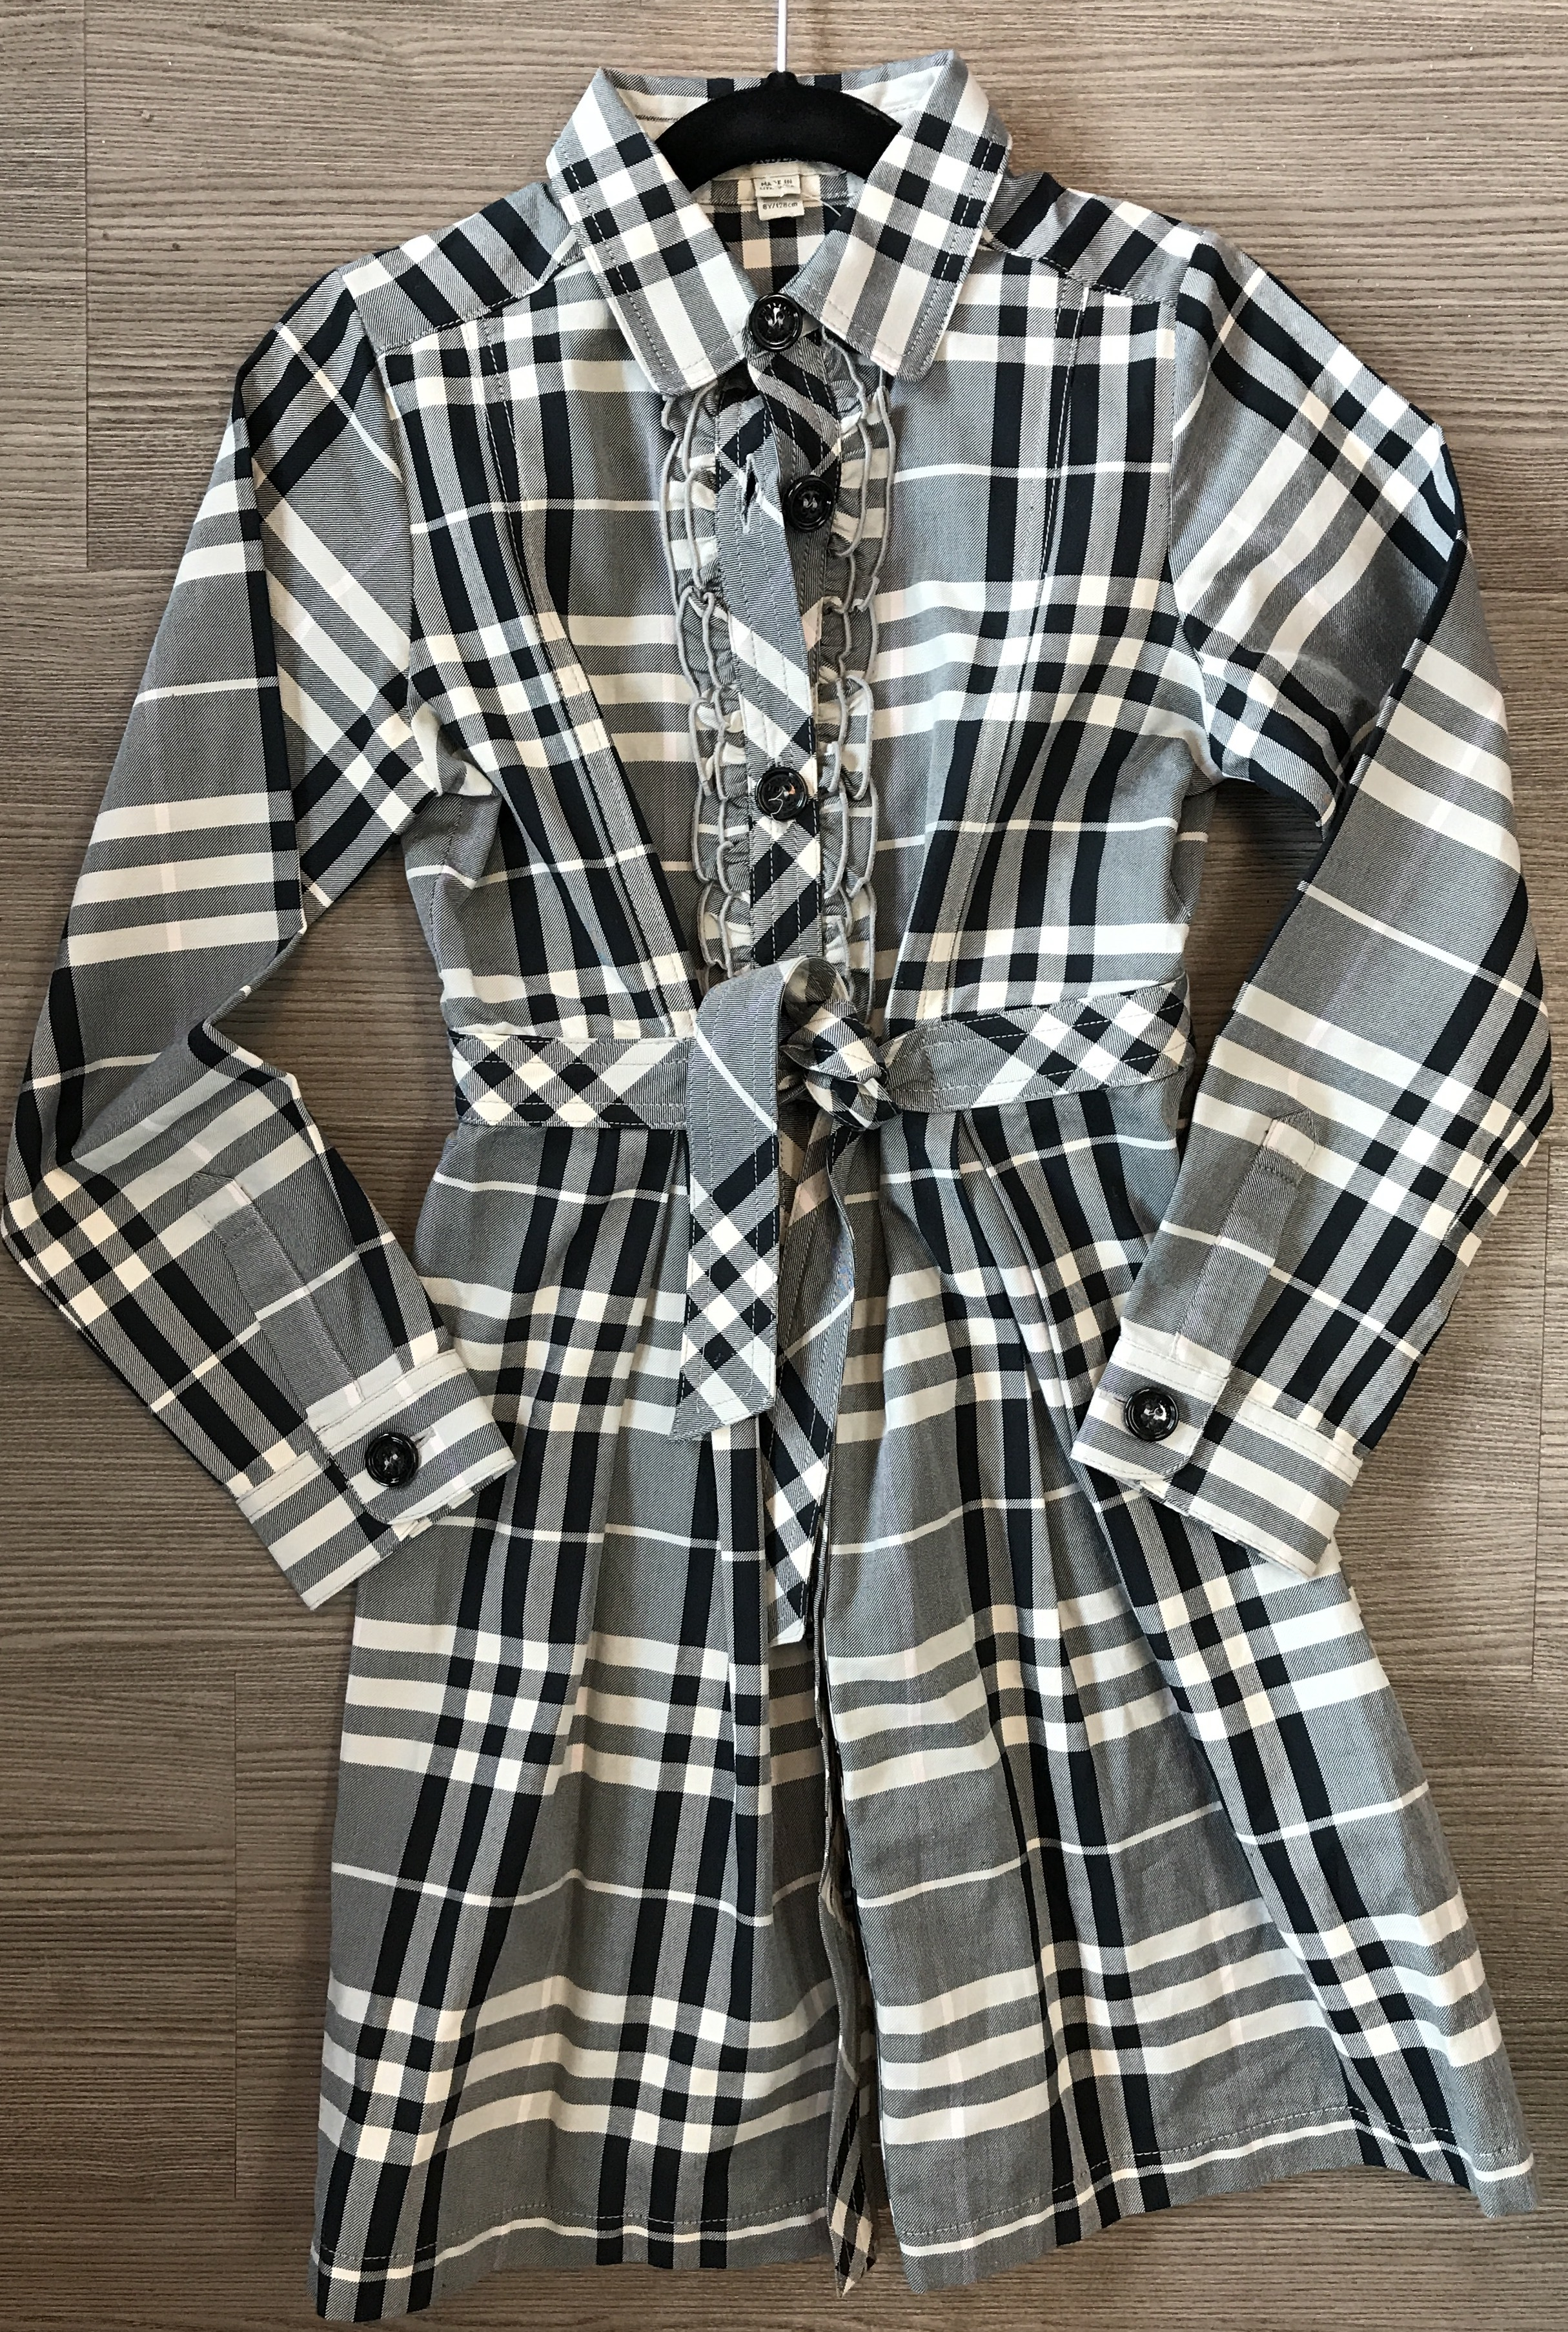 Burberry-Size-8-Plaid-Dress_8949A.jpg